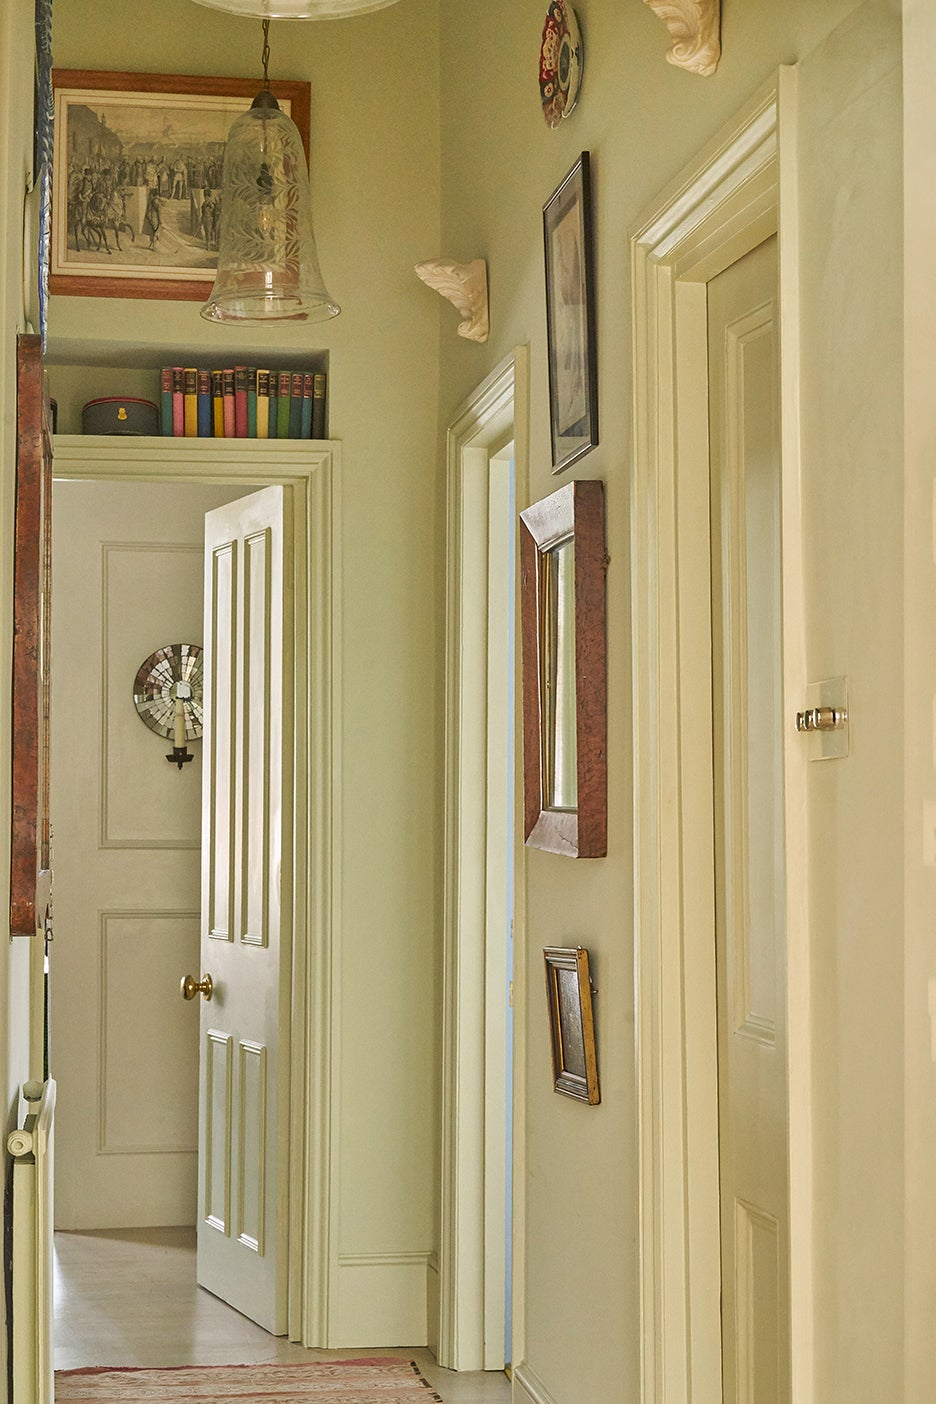 narrow hallway painted in yellow-beige